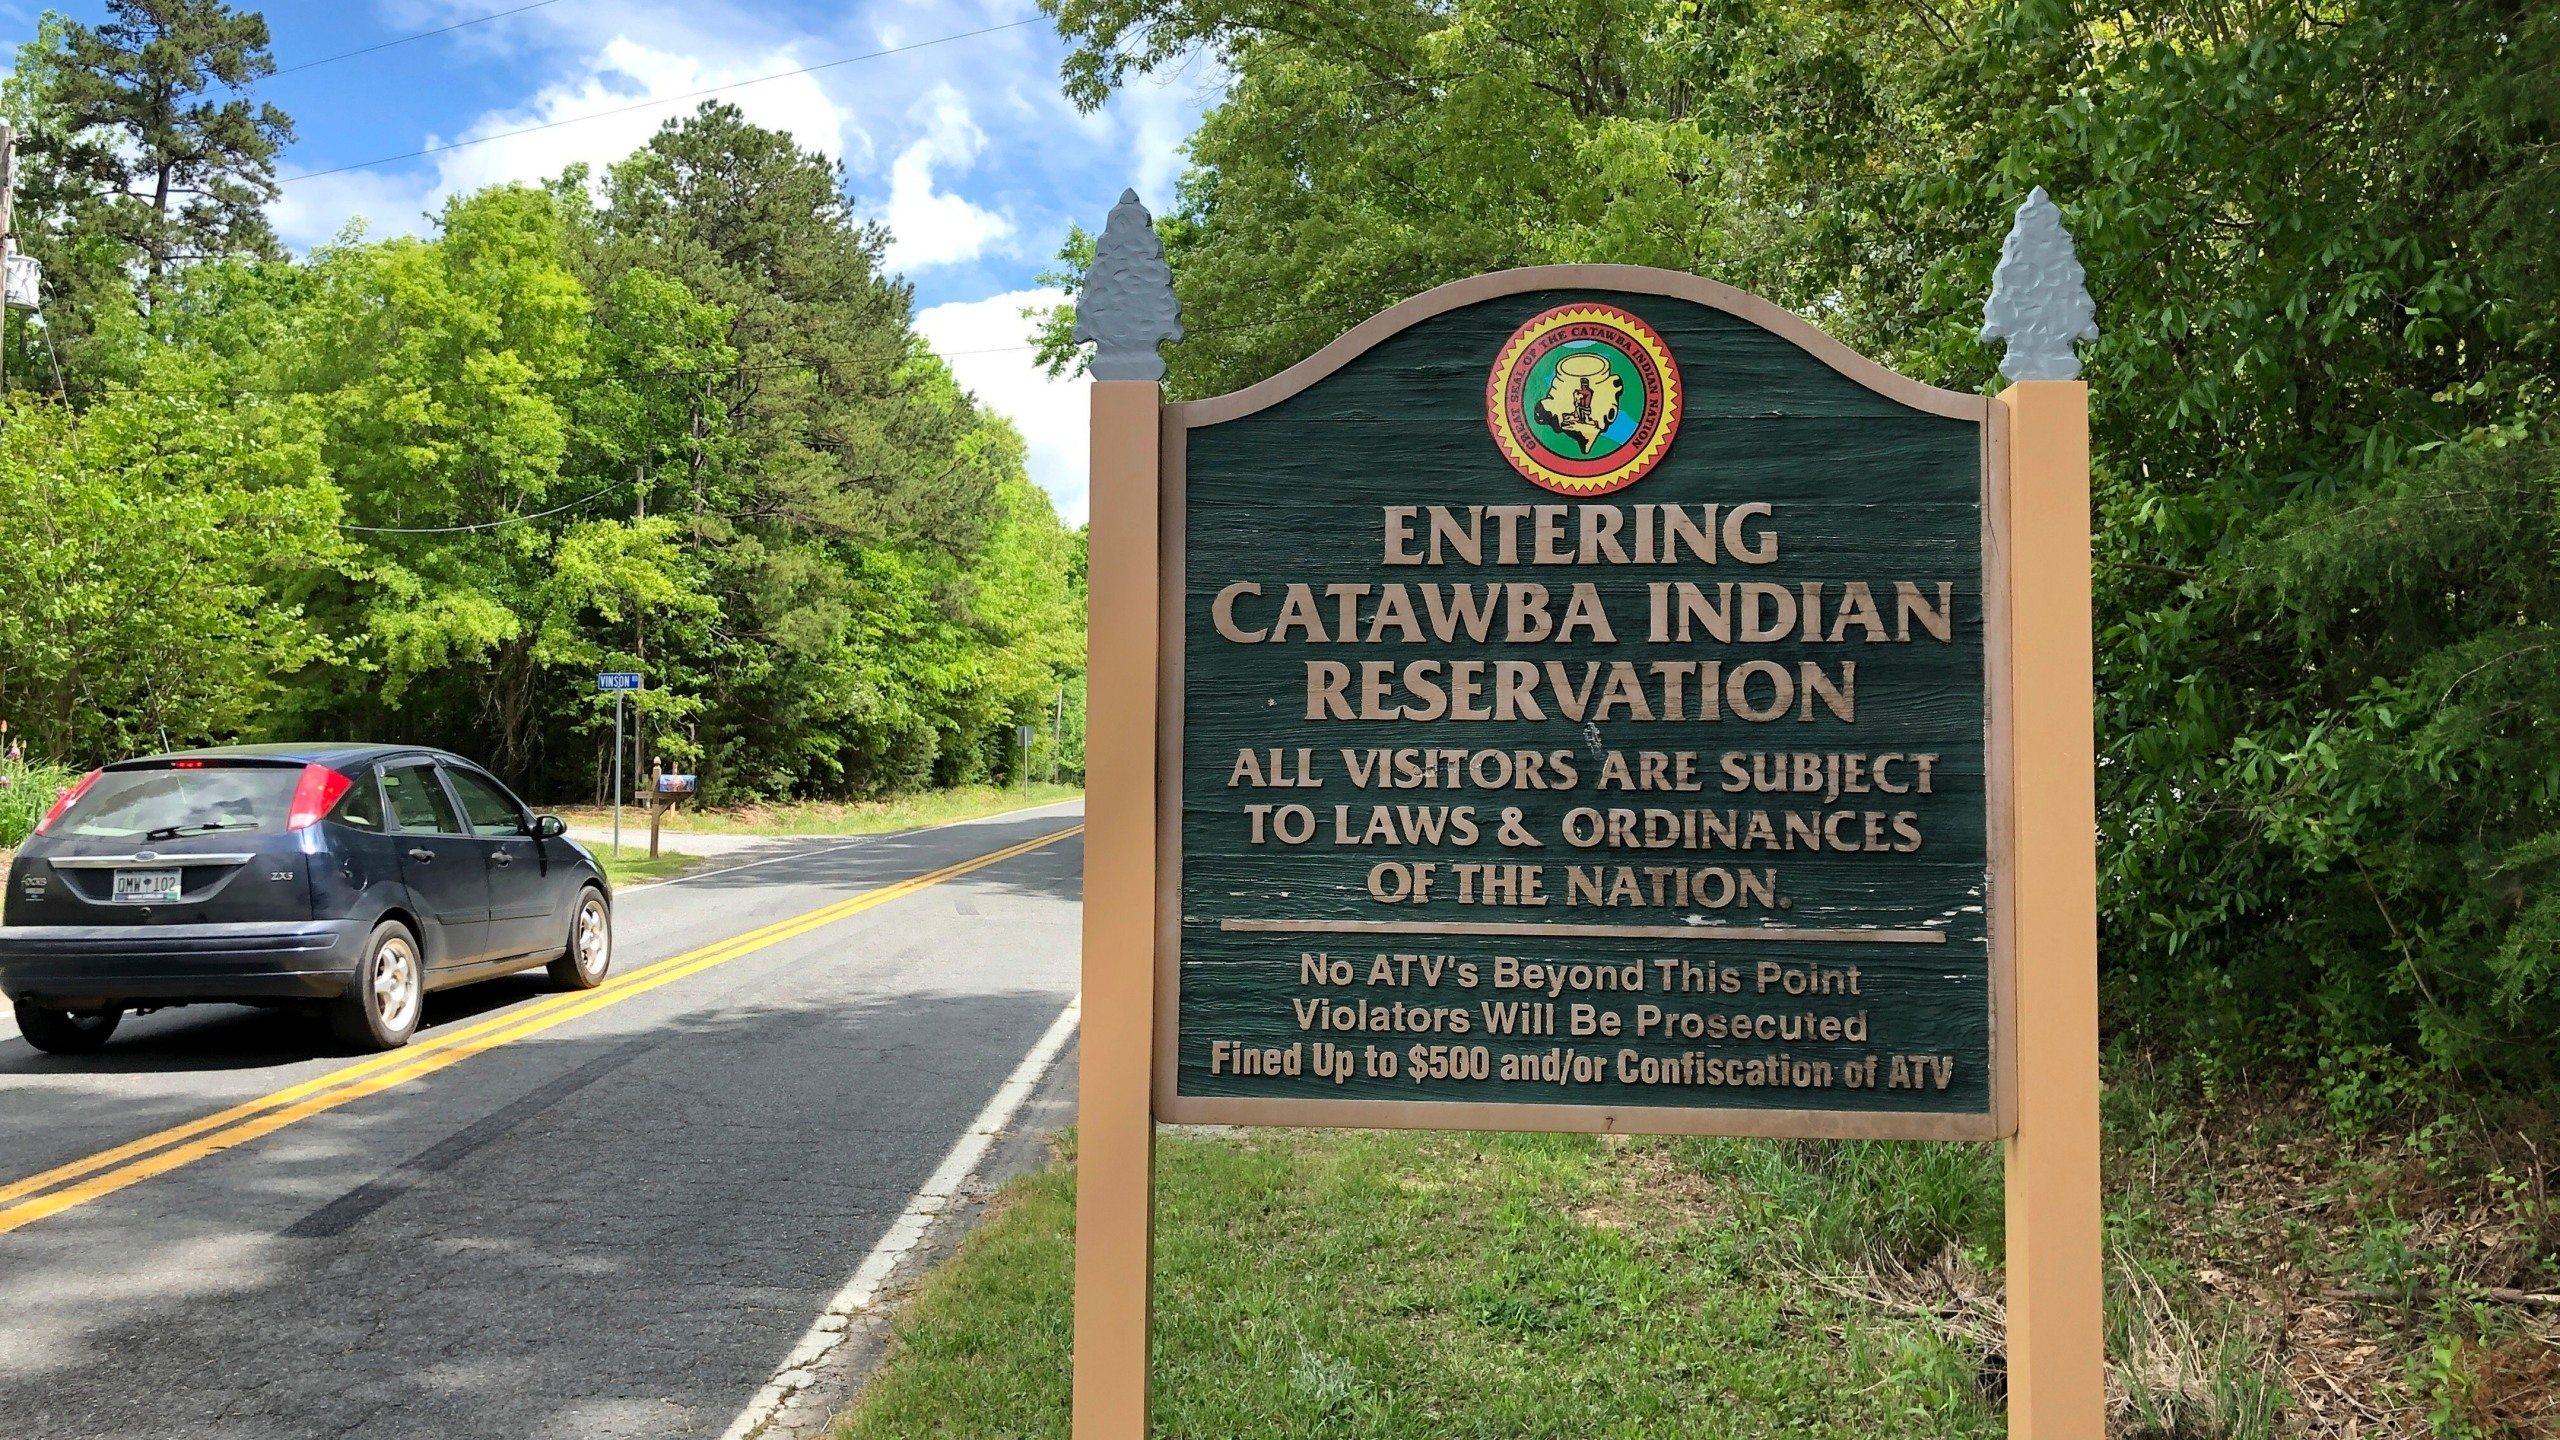 FILE - In this Friday, April 26, 2019 file photo, a sign welcomes people to the Catawba Indian Nation's reservation near Rock Hill, S.C. The South Carolina-based tribe has received federal and state approvals to build and run a casino near Kings Mountain, North Carolina. A federal judge on Friday rejected a legal challenge from Eastern Band of Cherokee Indians, which currently runs two casinos in the state. The land for the proposed casino is 35 miles (56 kilometers) northwest of the Catawba reservation in upstate South Carolina. (AP Photo /Jeffrey Collins, File)